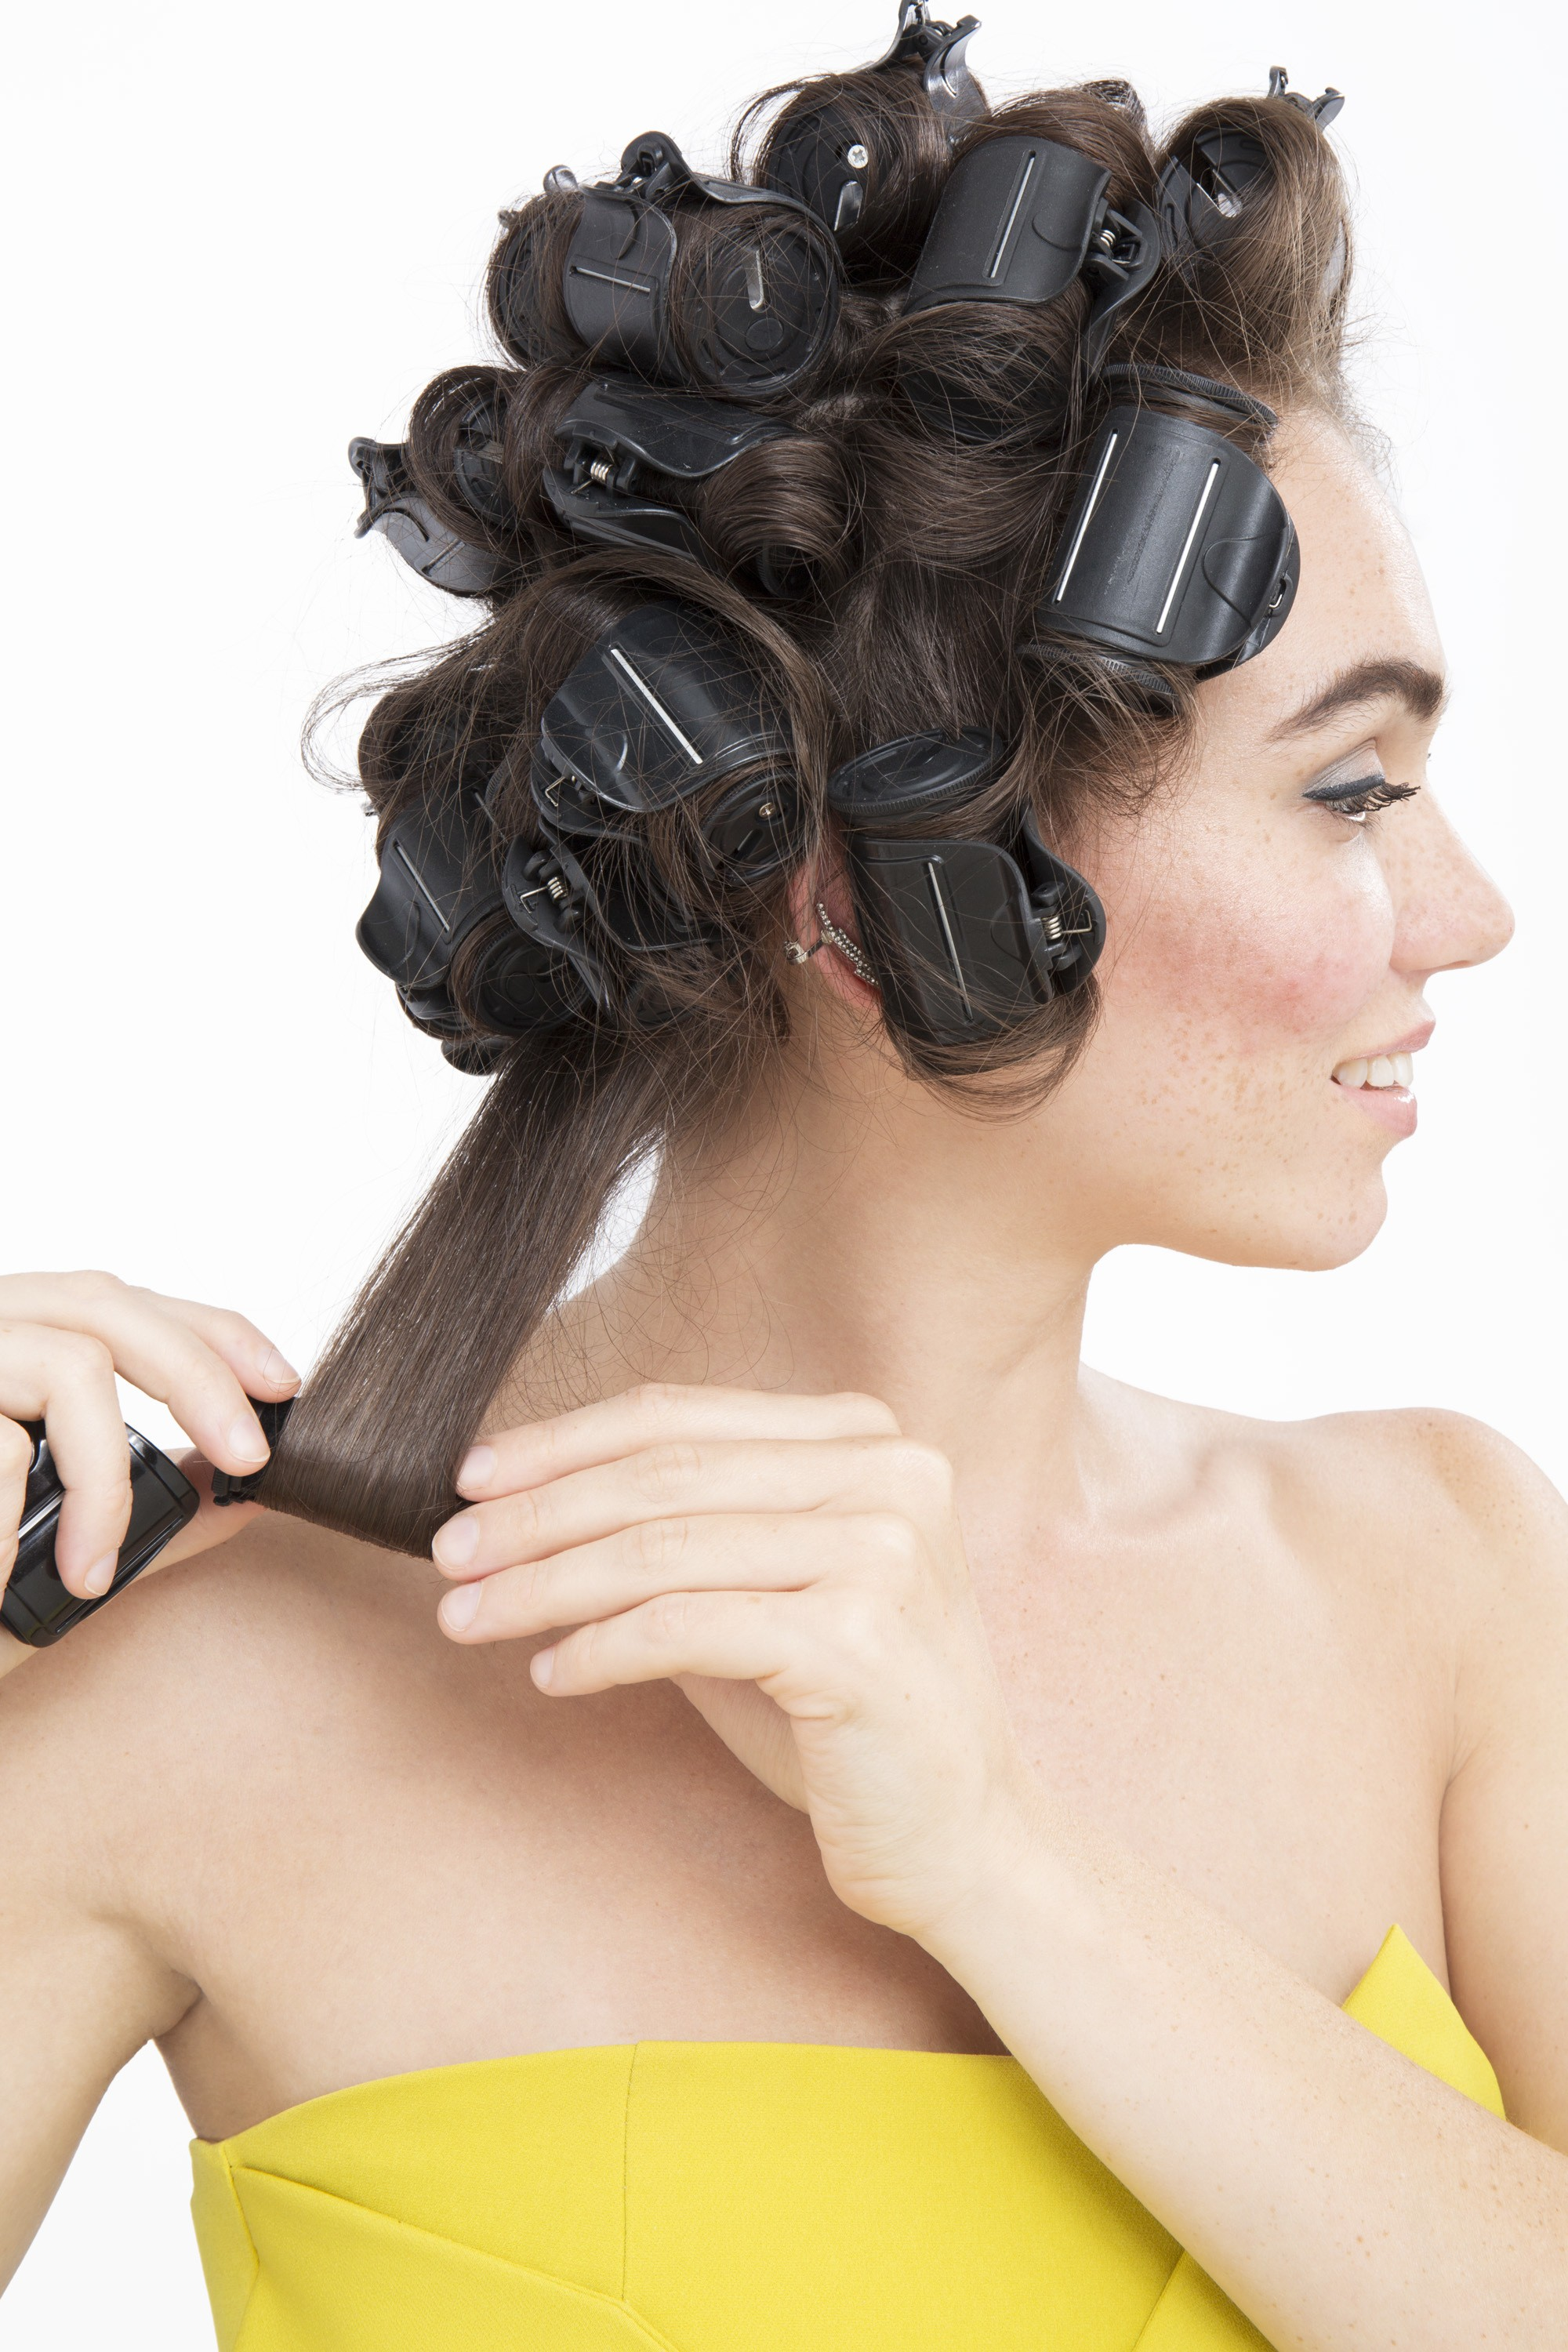 brunette model in strapless yellow dress with heated rollers in